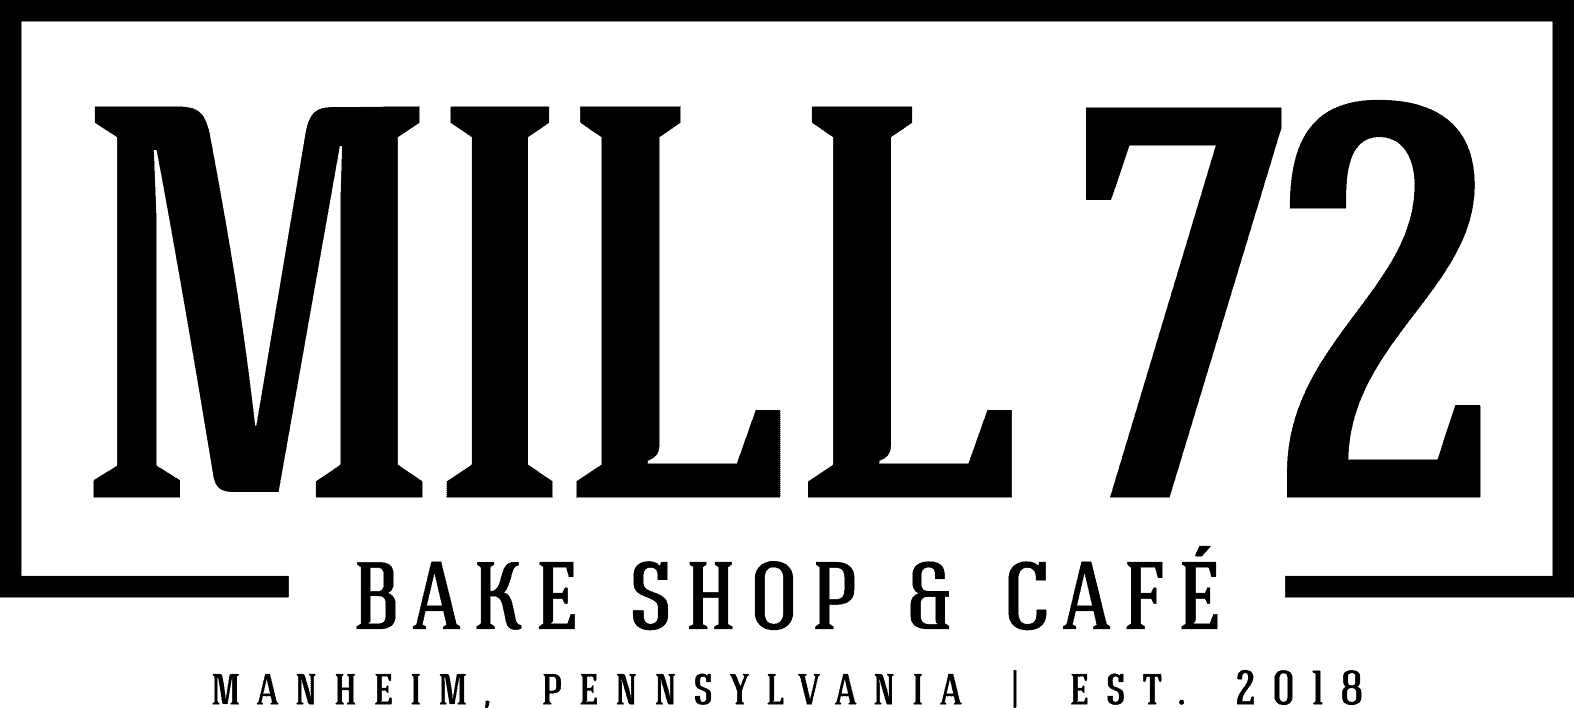 Mill 72 Bake Shop and Cafe